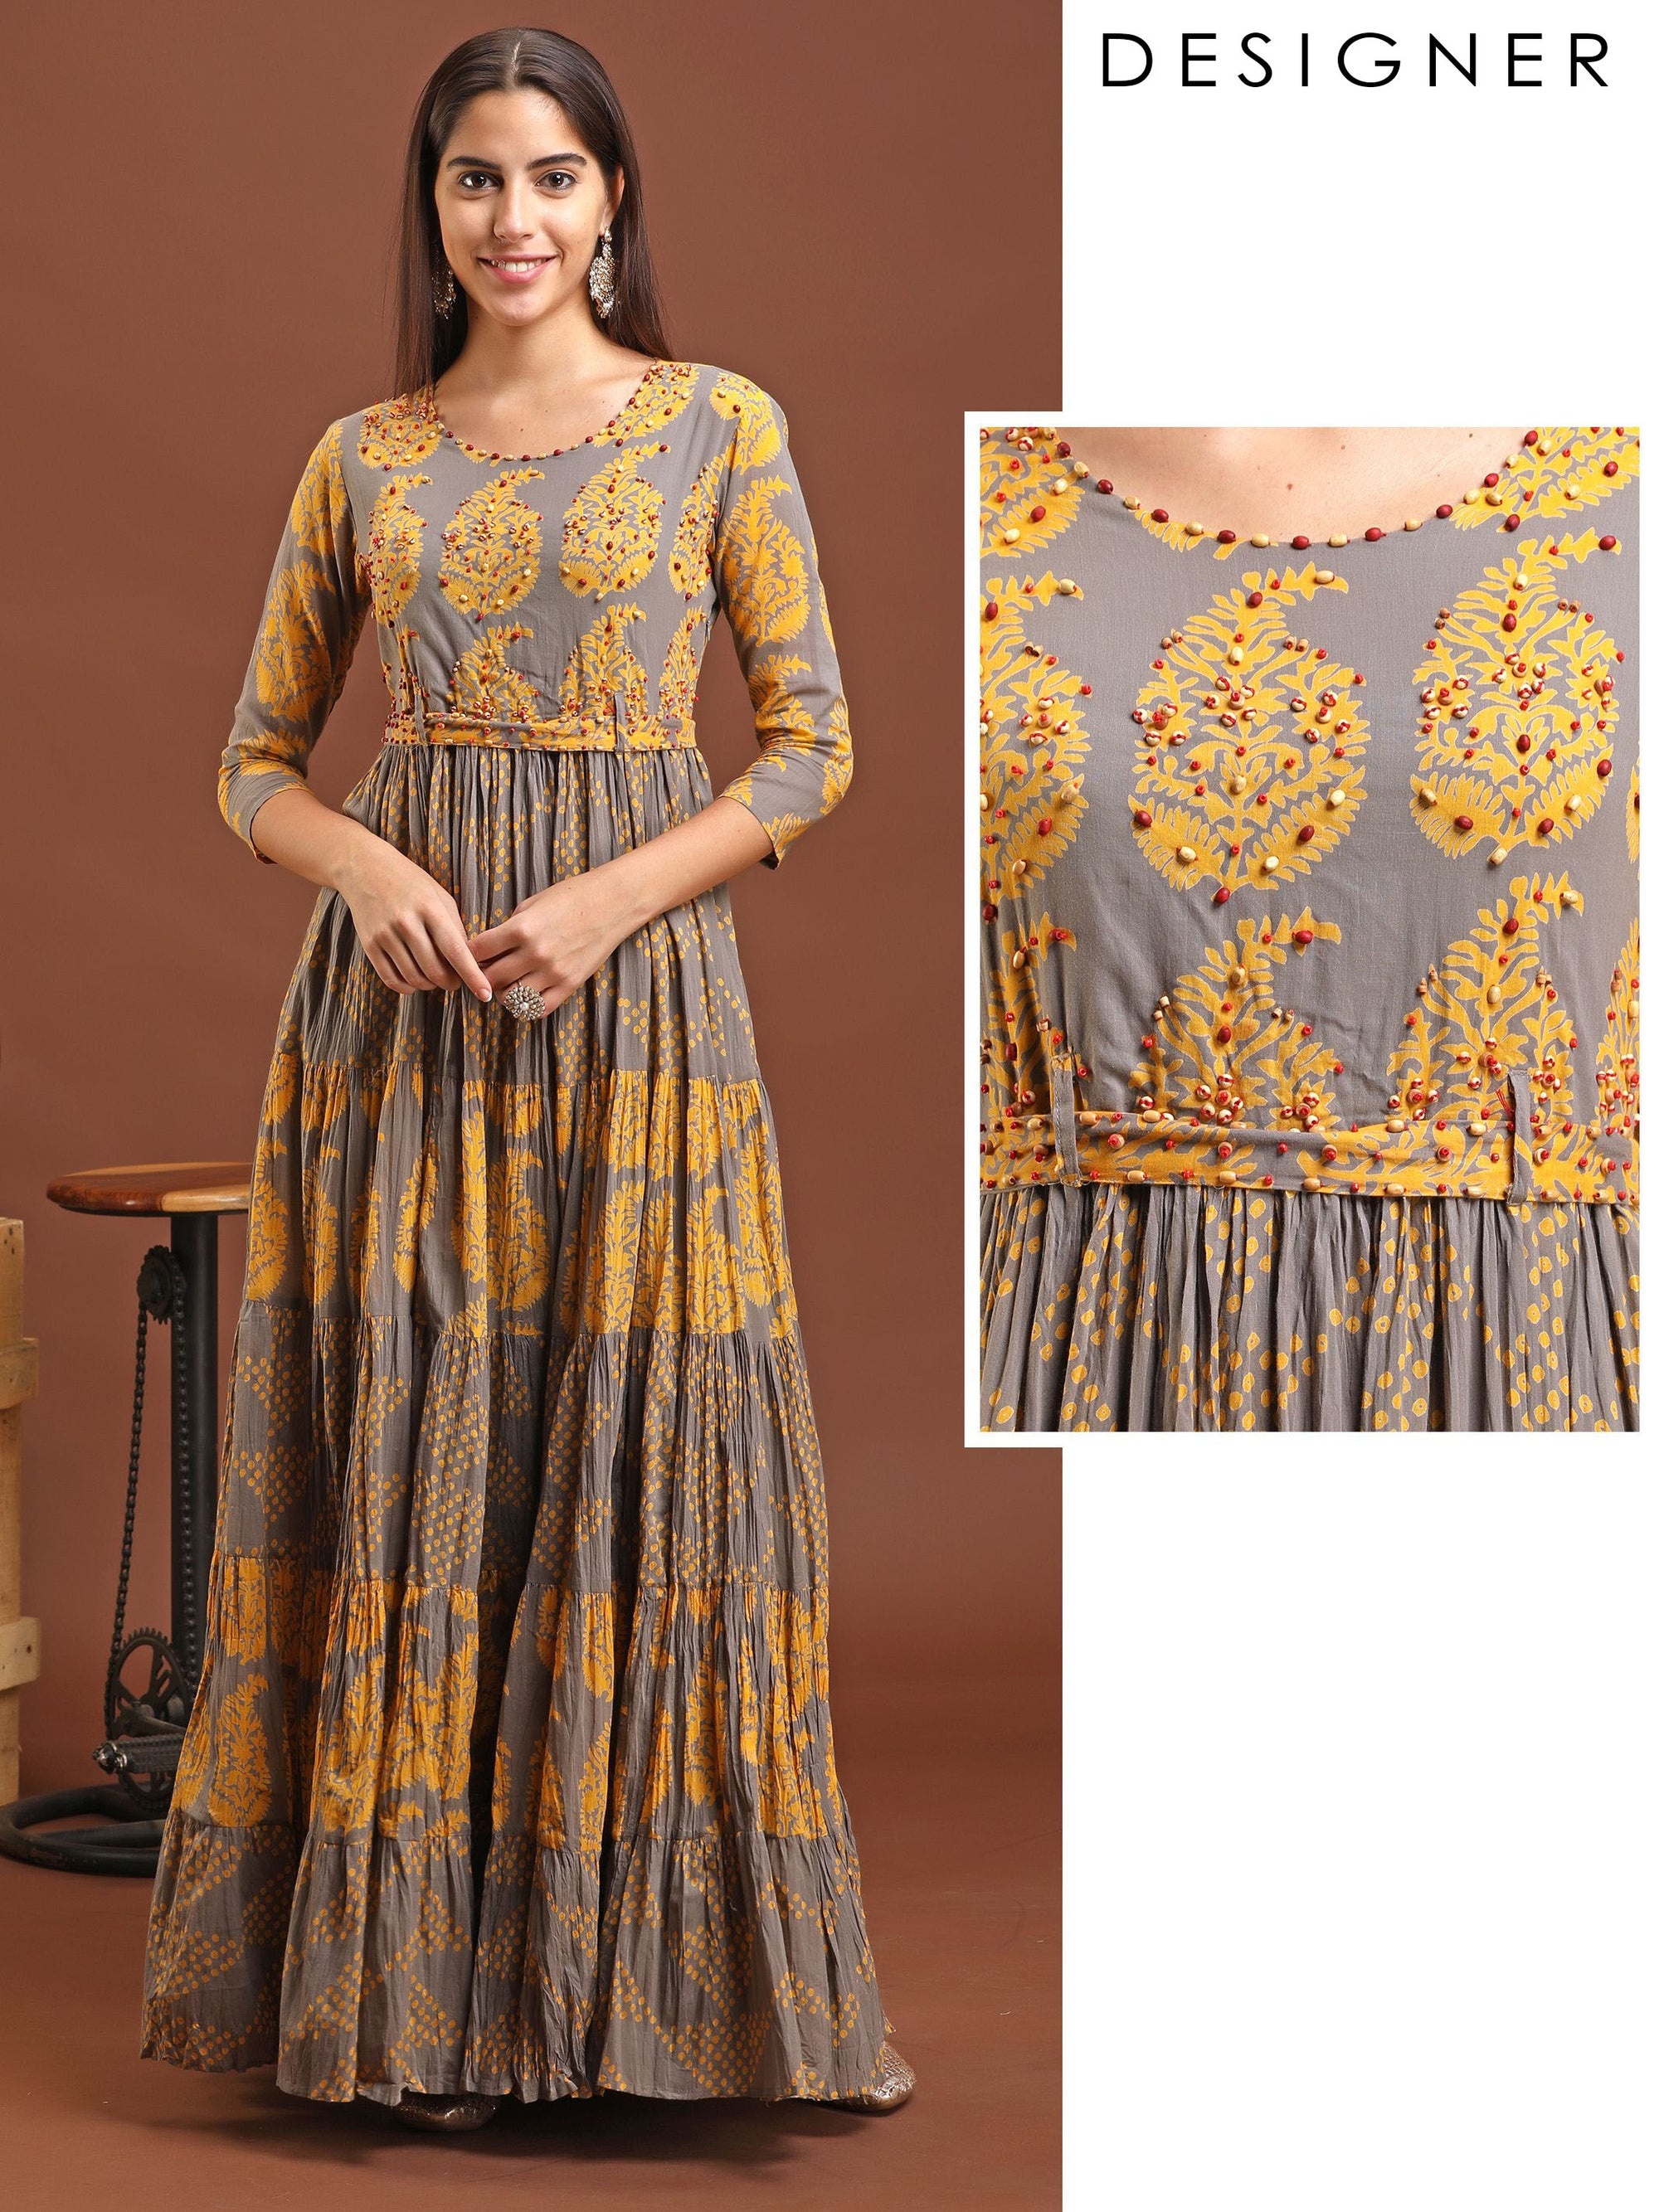 Yellow Leaf Printed Flowy Maxi Dress with Belt